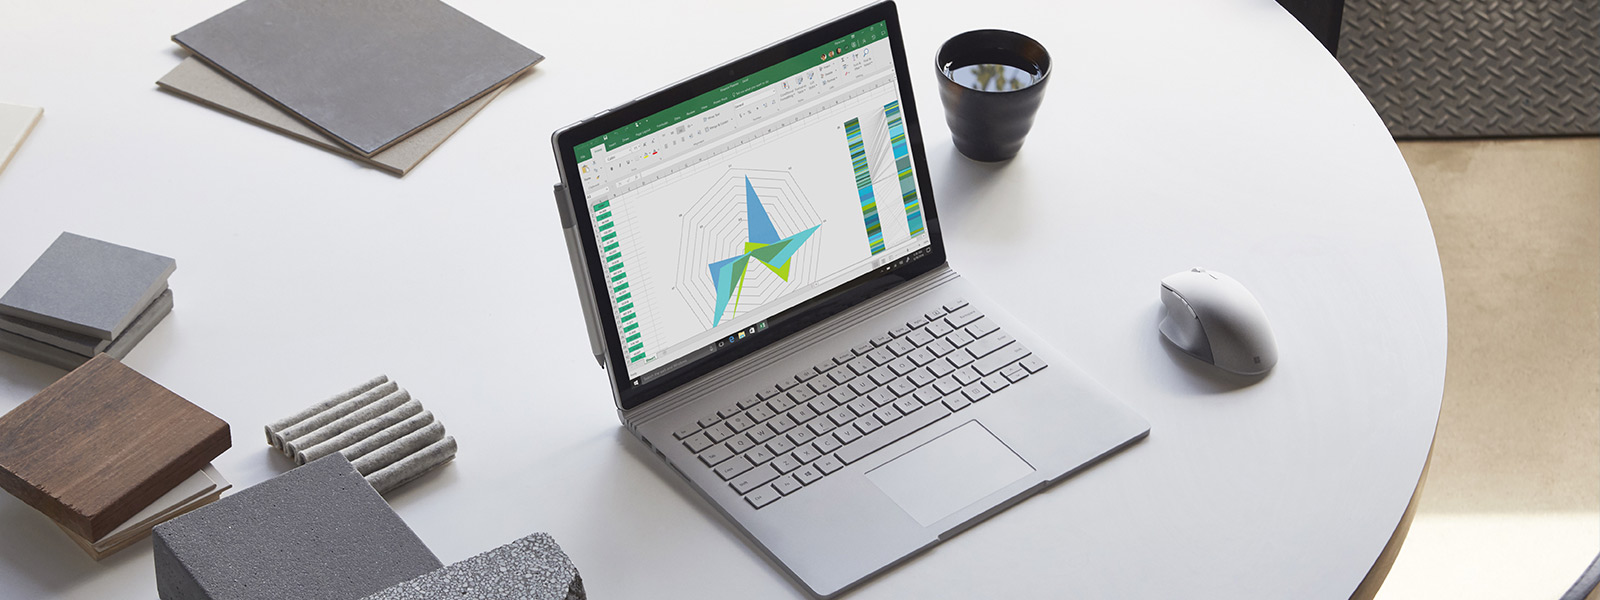 Surface Book 2 上的 Excel